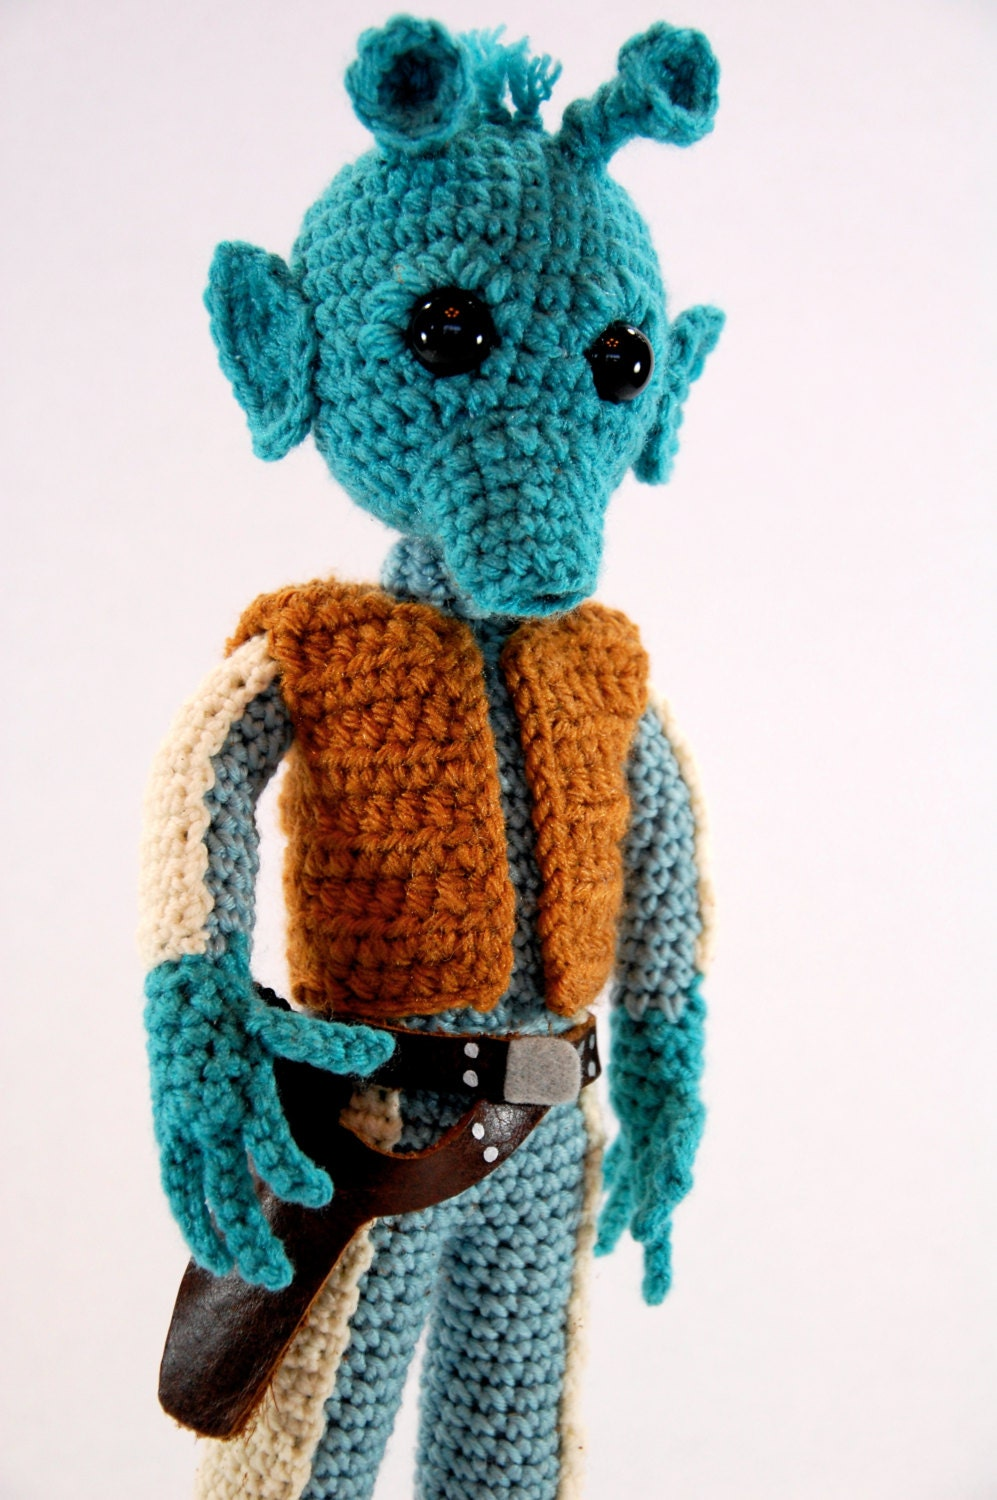 Greedo Star Wars Amigurumi Crochet doll Pattern